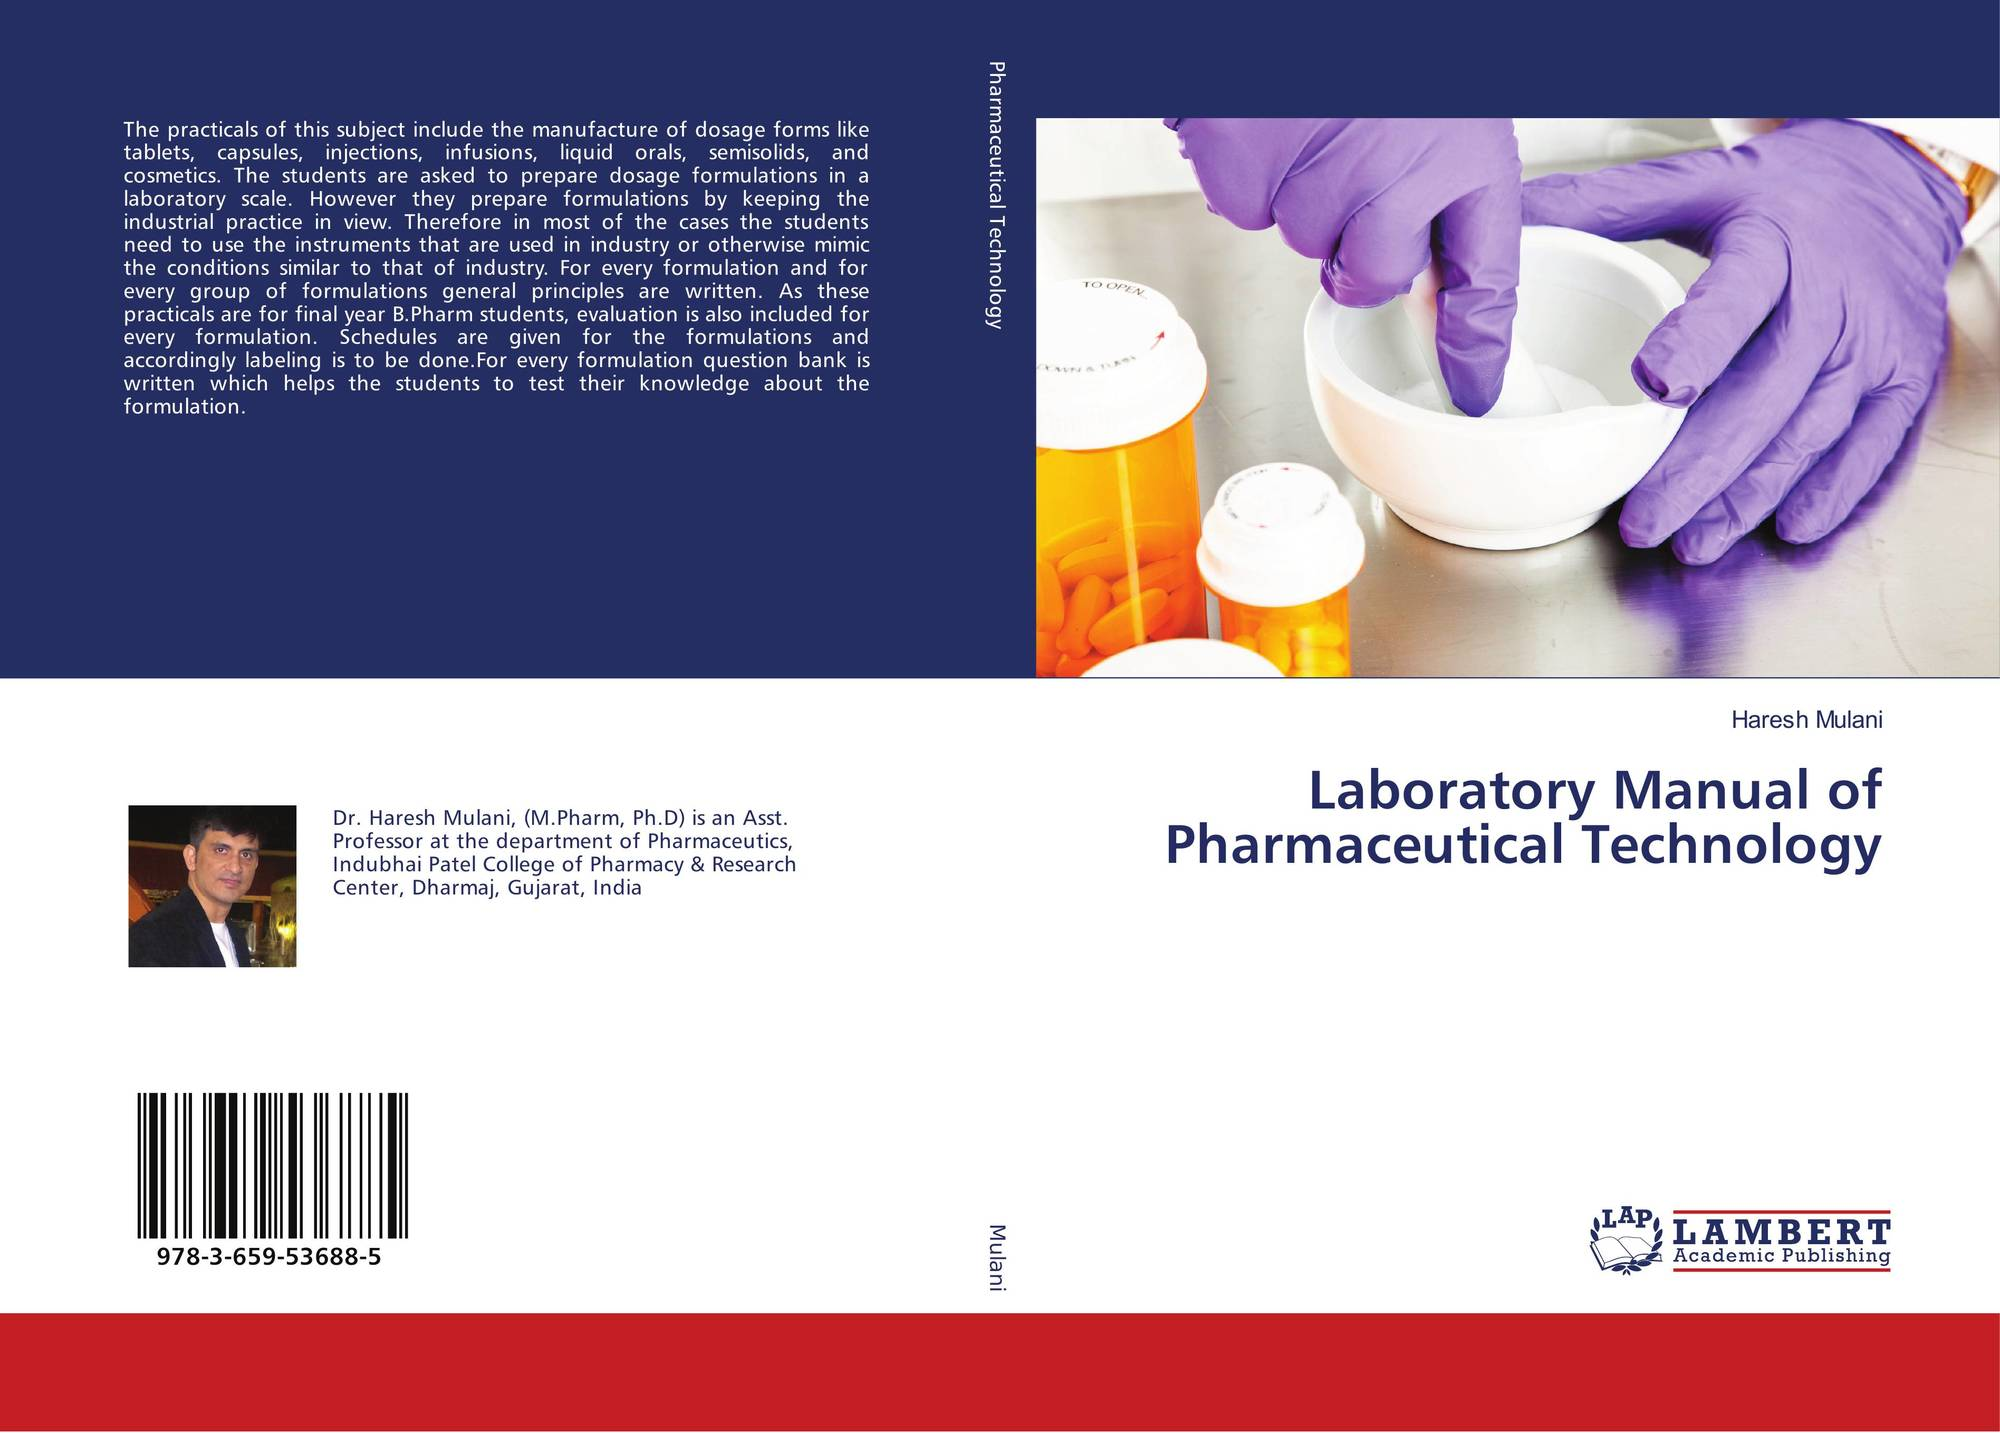 Bookcover of Laboratory Manual of Pharmaceutical Technology. 9783659536885